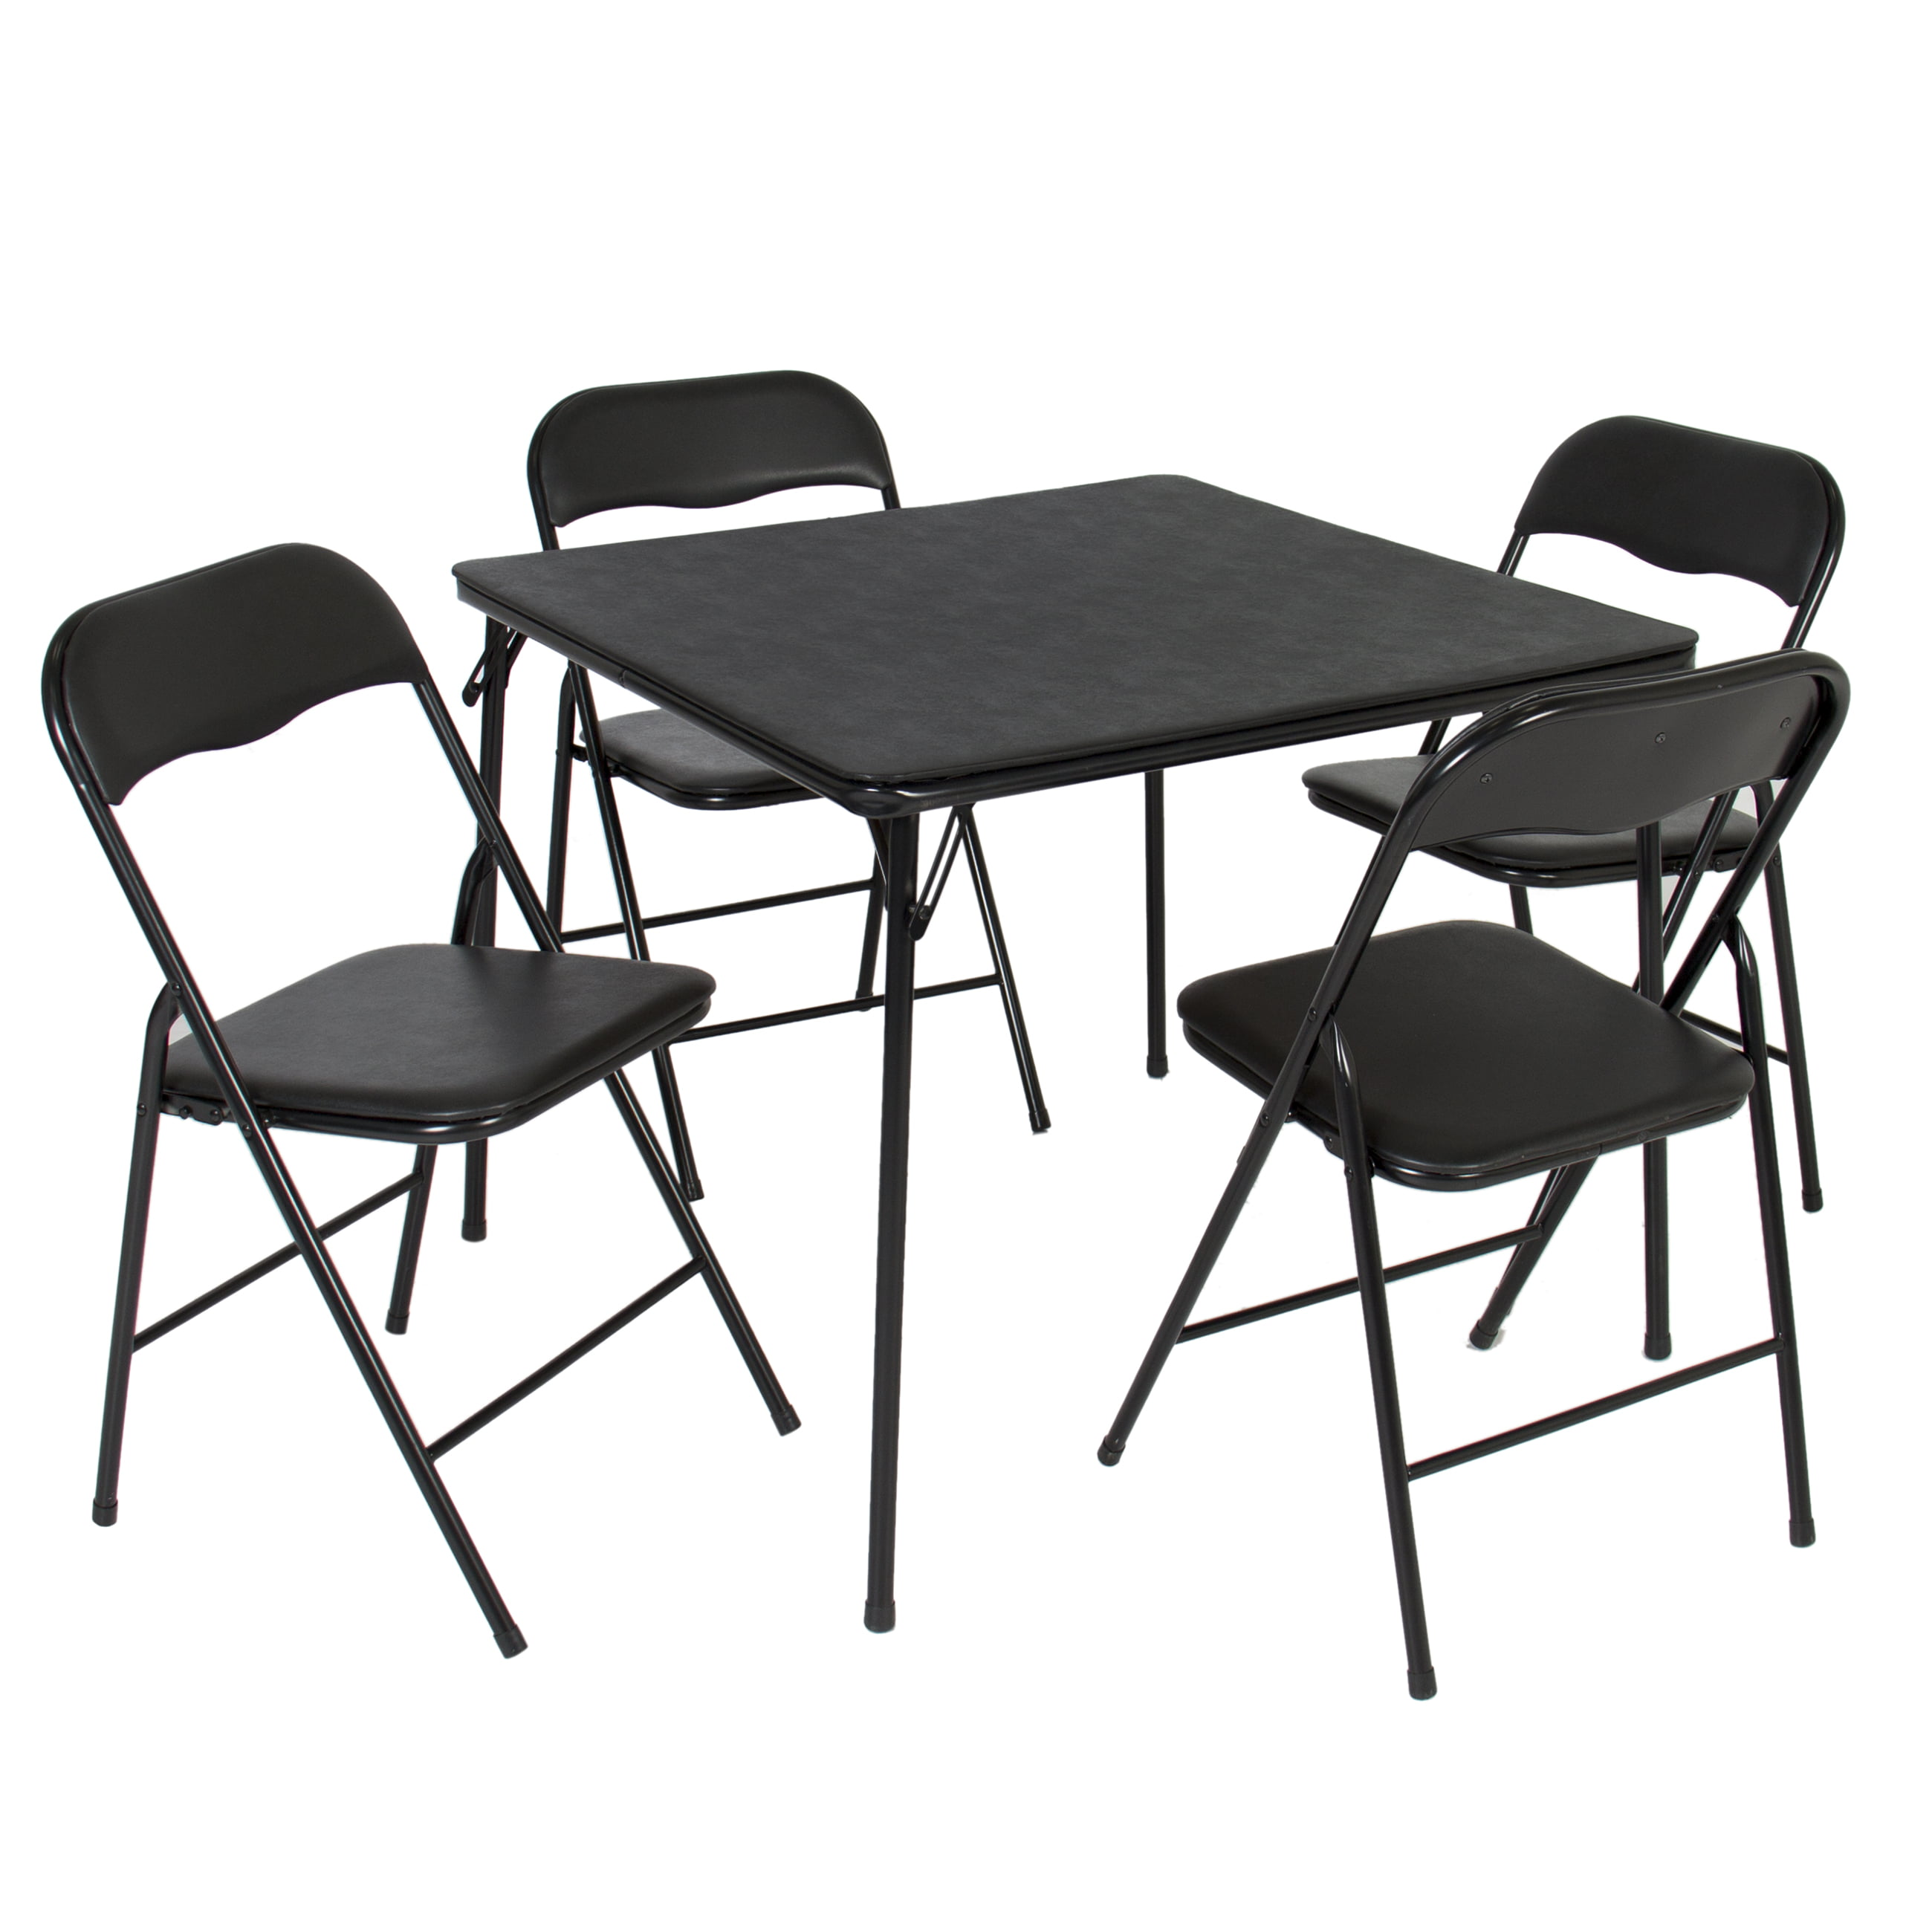 5PC Folding Table & Chairs Card Poker Game Parties Portable Furniture Dining Room Set by